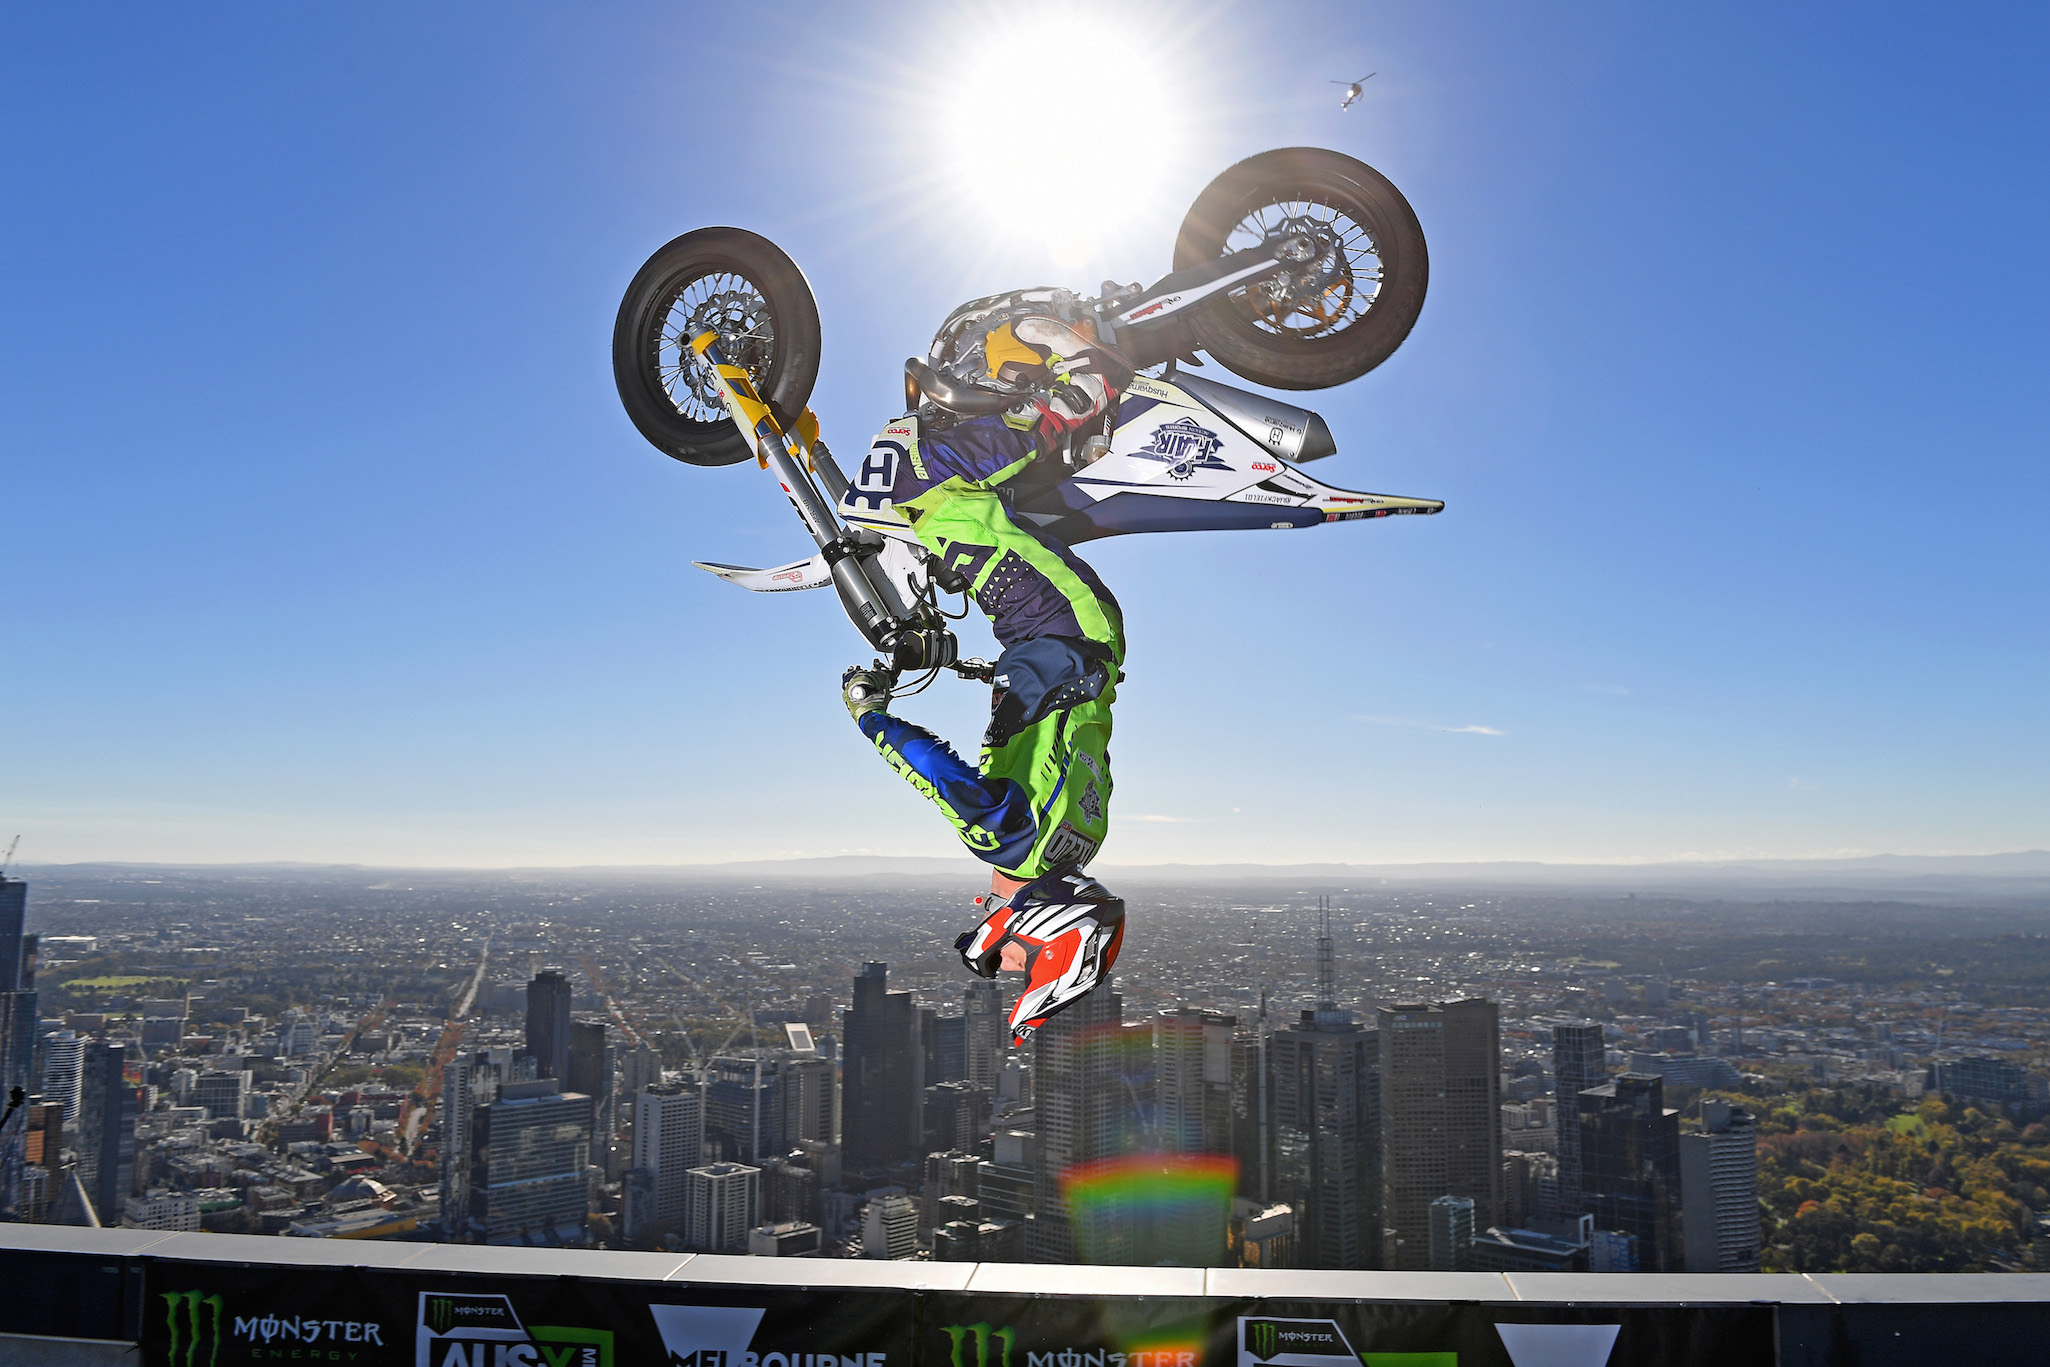 Jack Field (Flair Riders) preforms 300m above there city of Melbourne Aus-X Open Melbourne preview 90th Floor / Eureka Tower Sky Deck MELBOURNE VIC AUS Wednesday 22 May 2019 © STL / Jeff Crow / AME Management